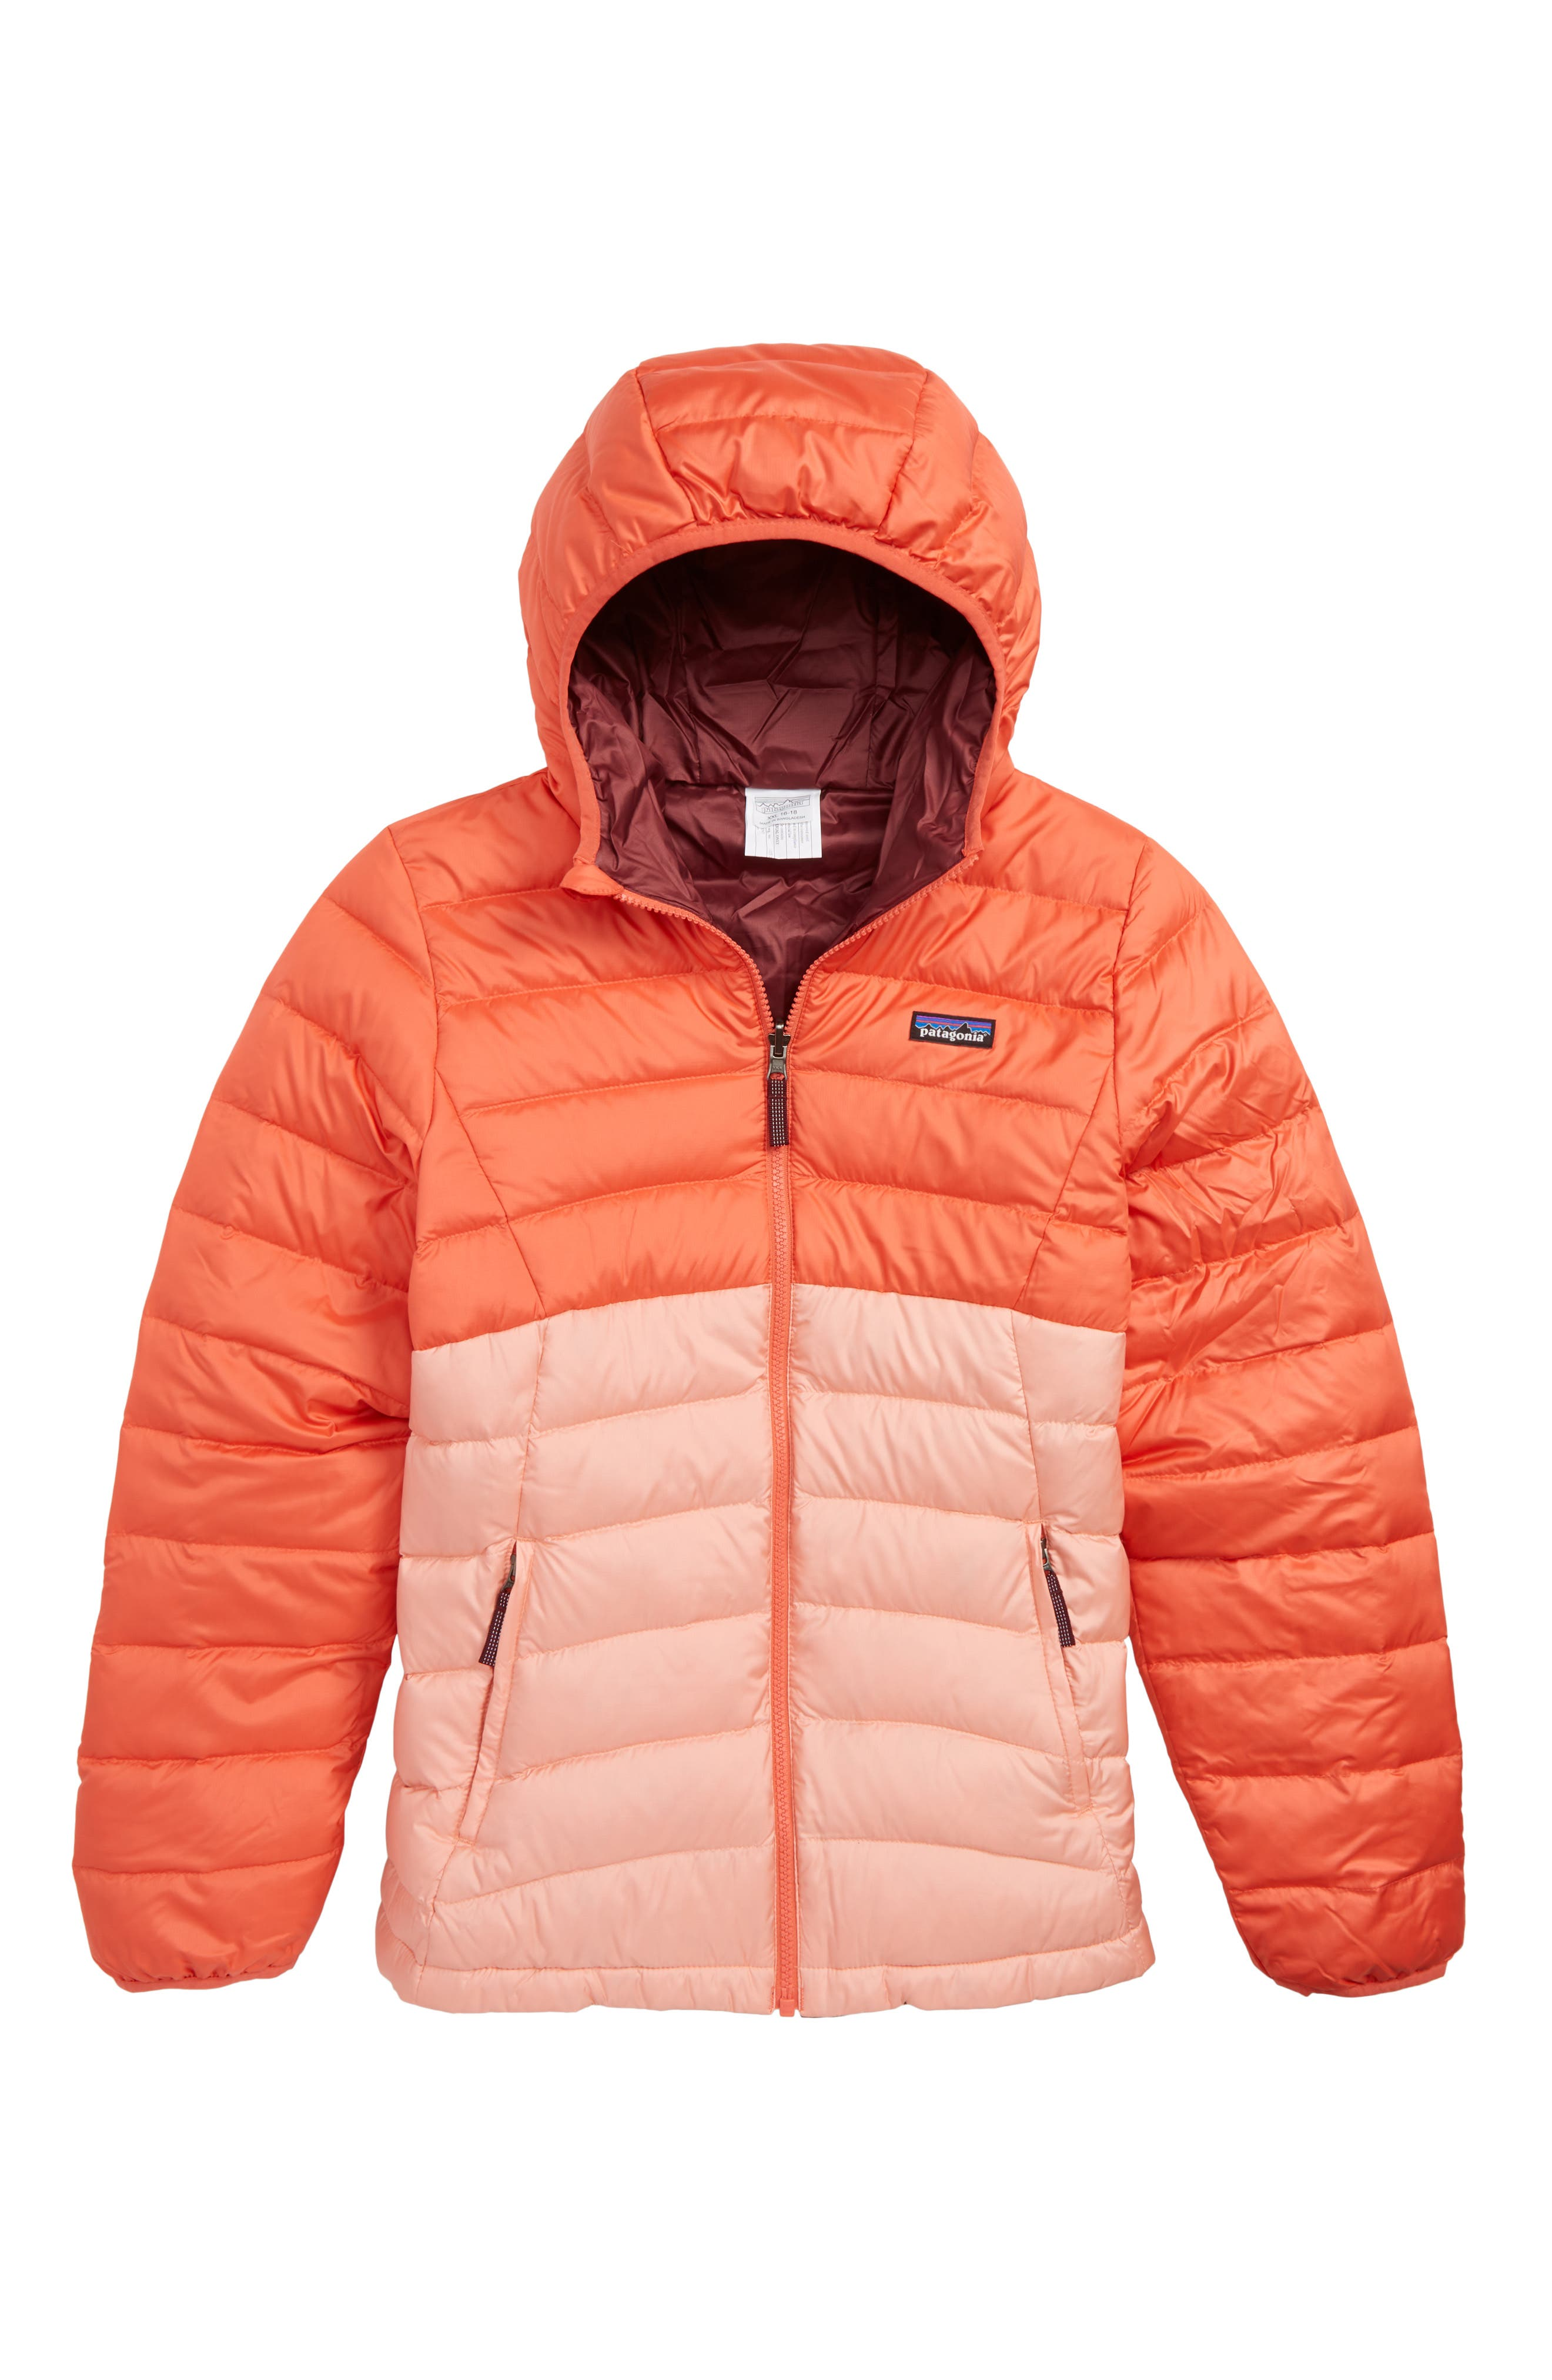 Reversible Water Repellent 600 Fill Power Down Hooded Jacket,                             Main thumbnail 1, color,                             SPICED CORAL